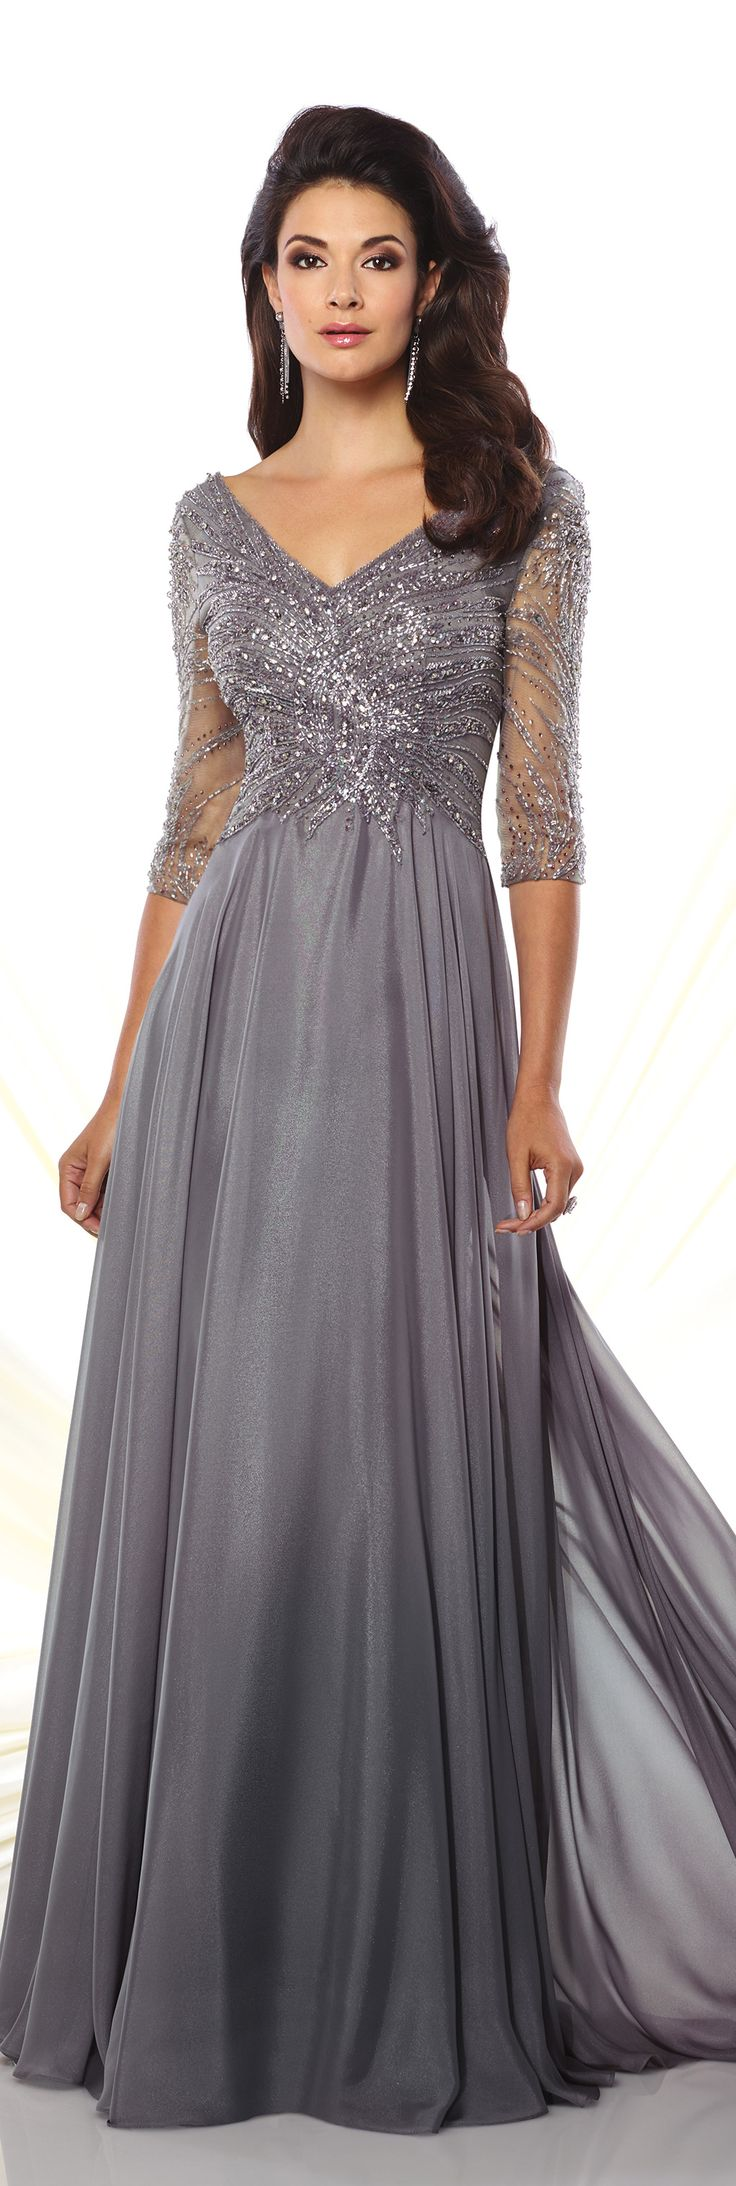 Best 25+ Formal evening gowns ideas on Pinterest